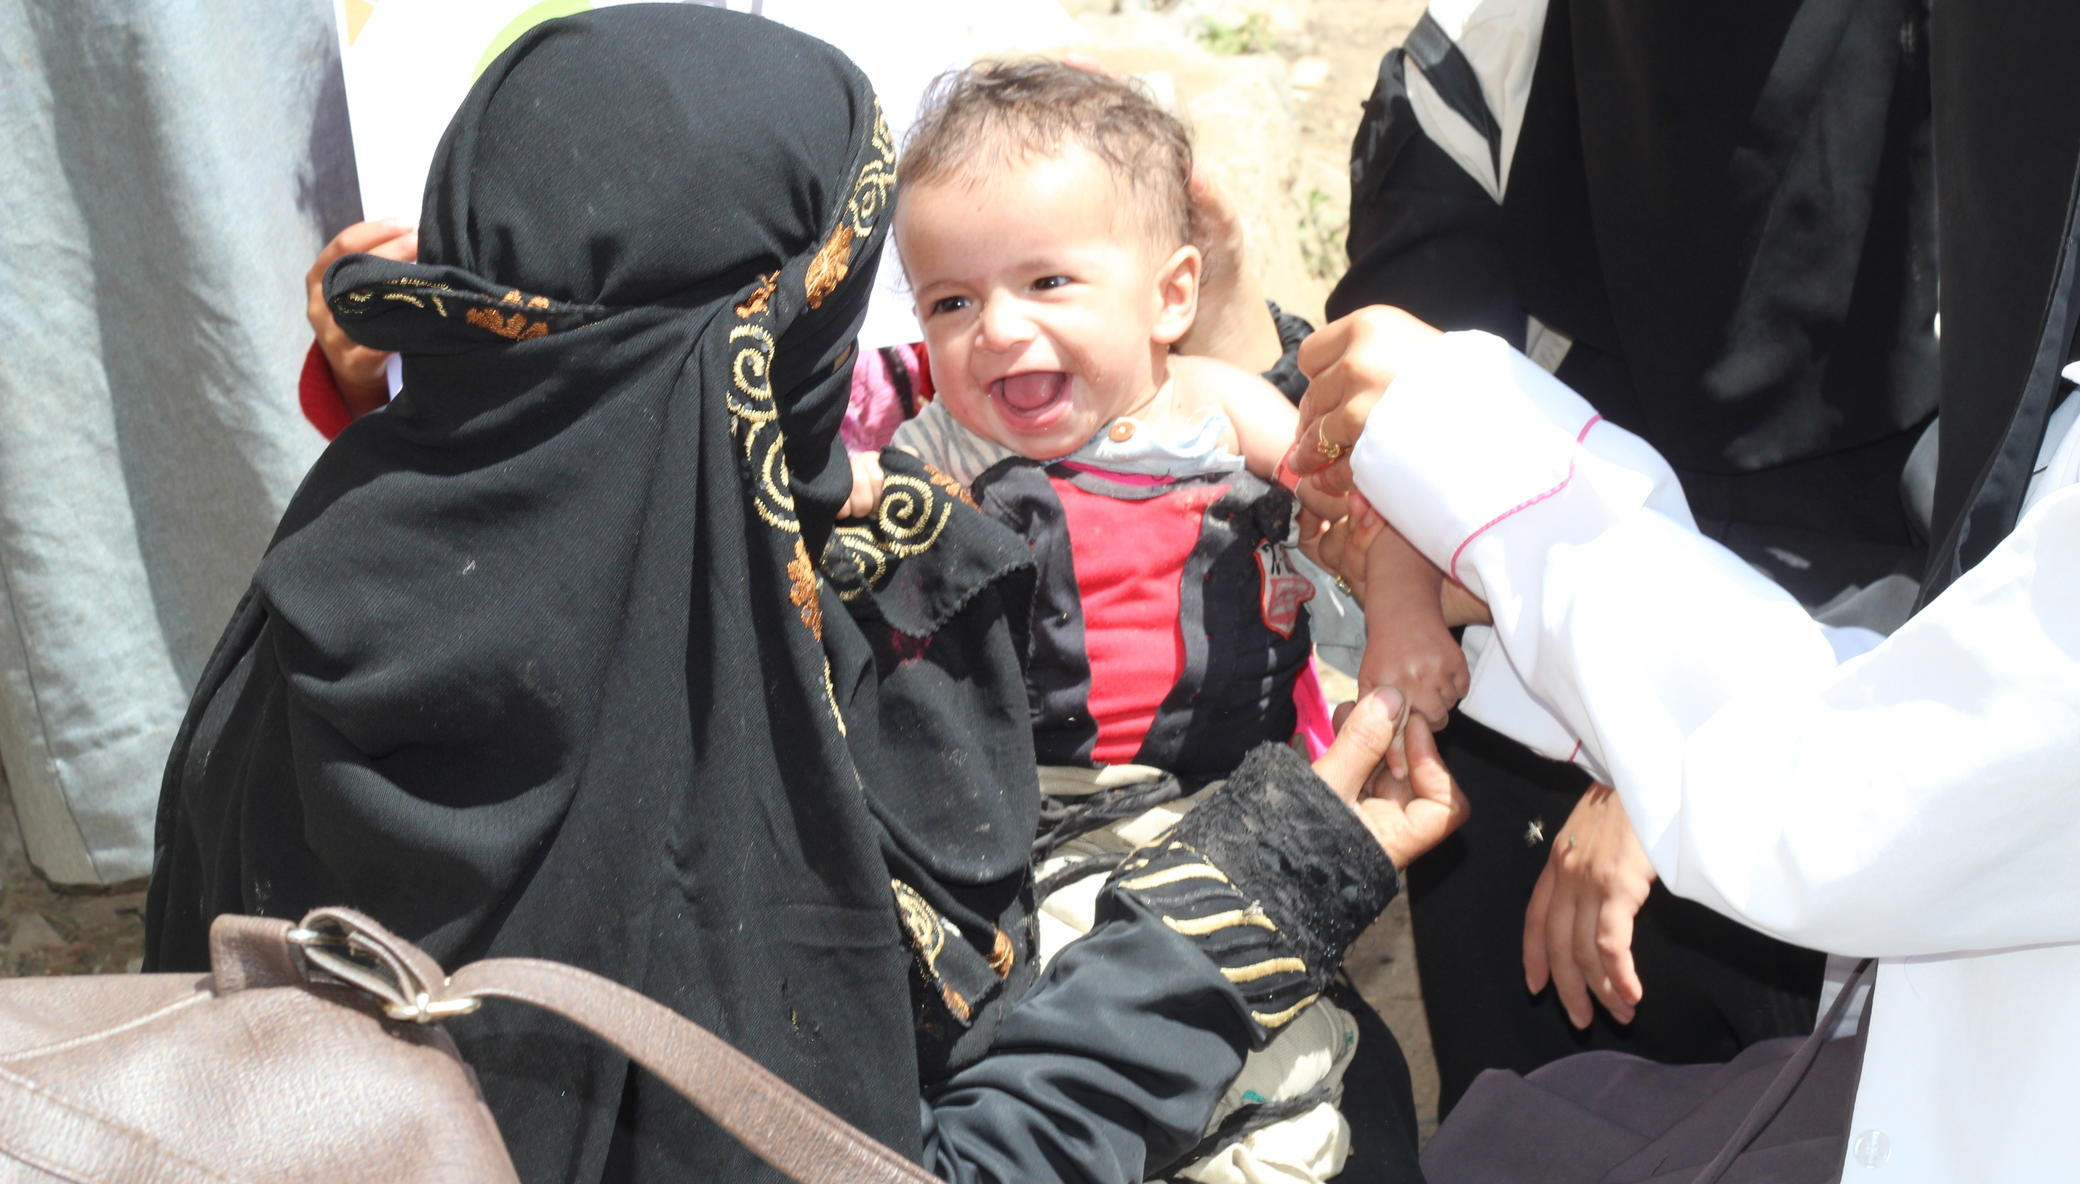 Protecting 1469 Yemeni children from malnutrition